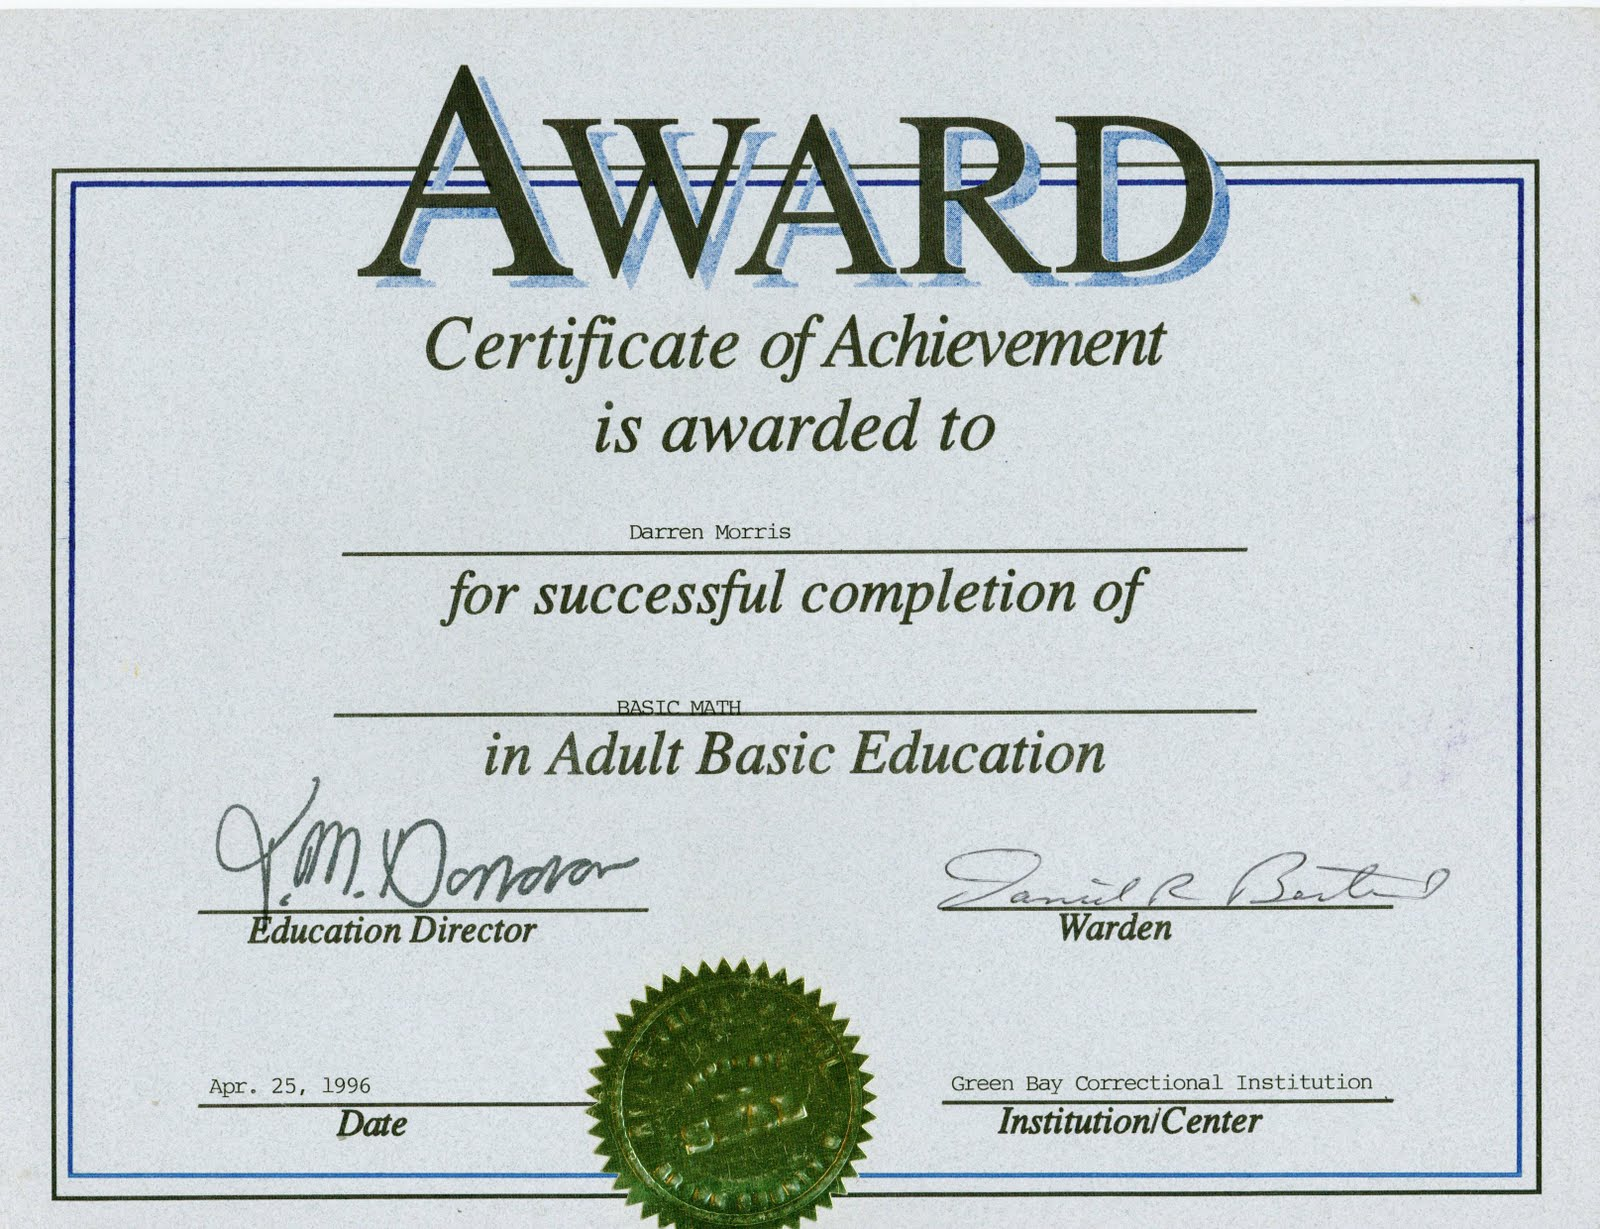 adult%252Bbasic%252Bed%252Bcompl%252Baward Jean Marie Aubin is the Adult Basic Education Instructor at Hampshire County ...